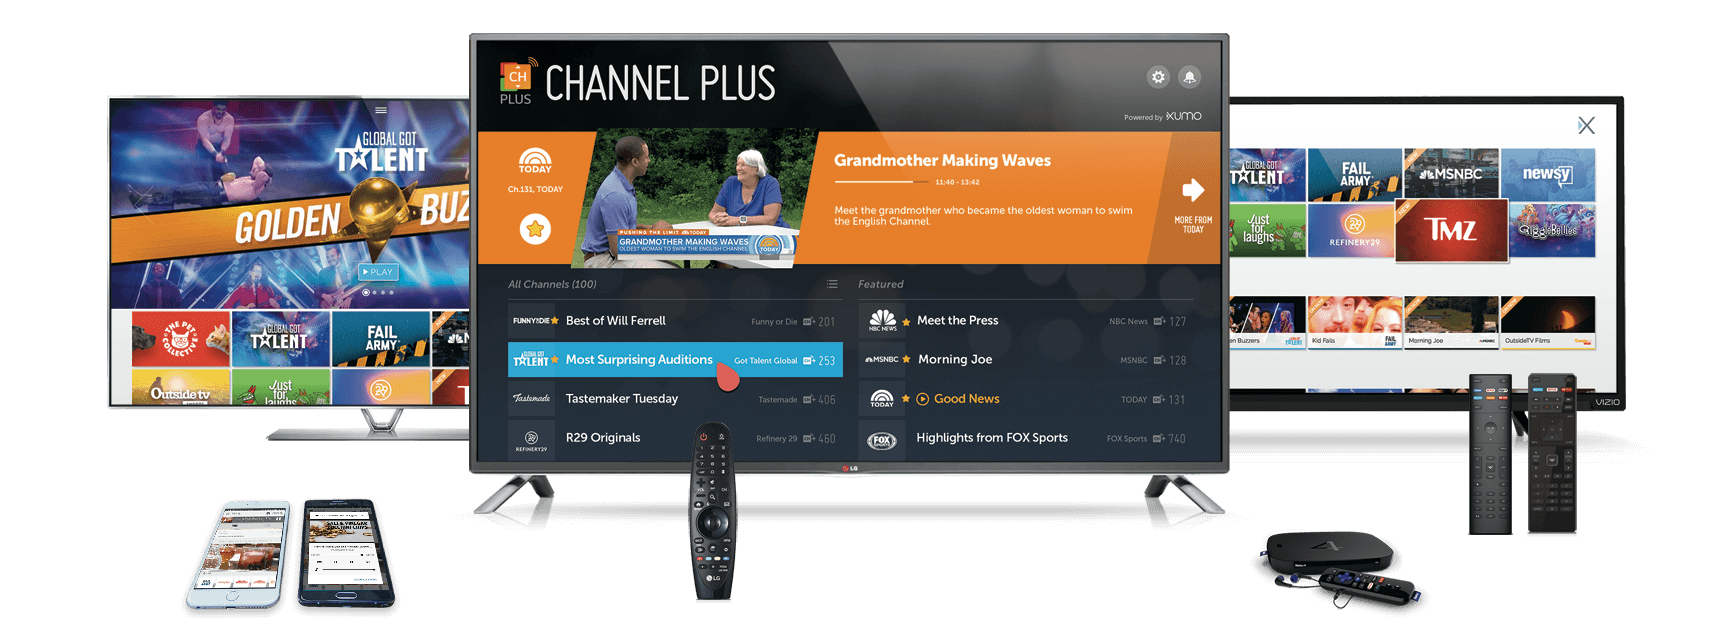 channels_smartTV_may12